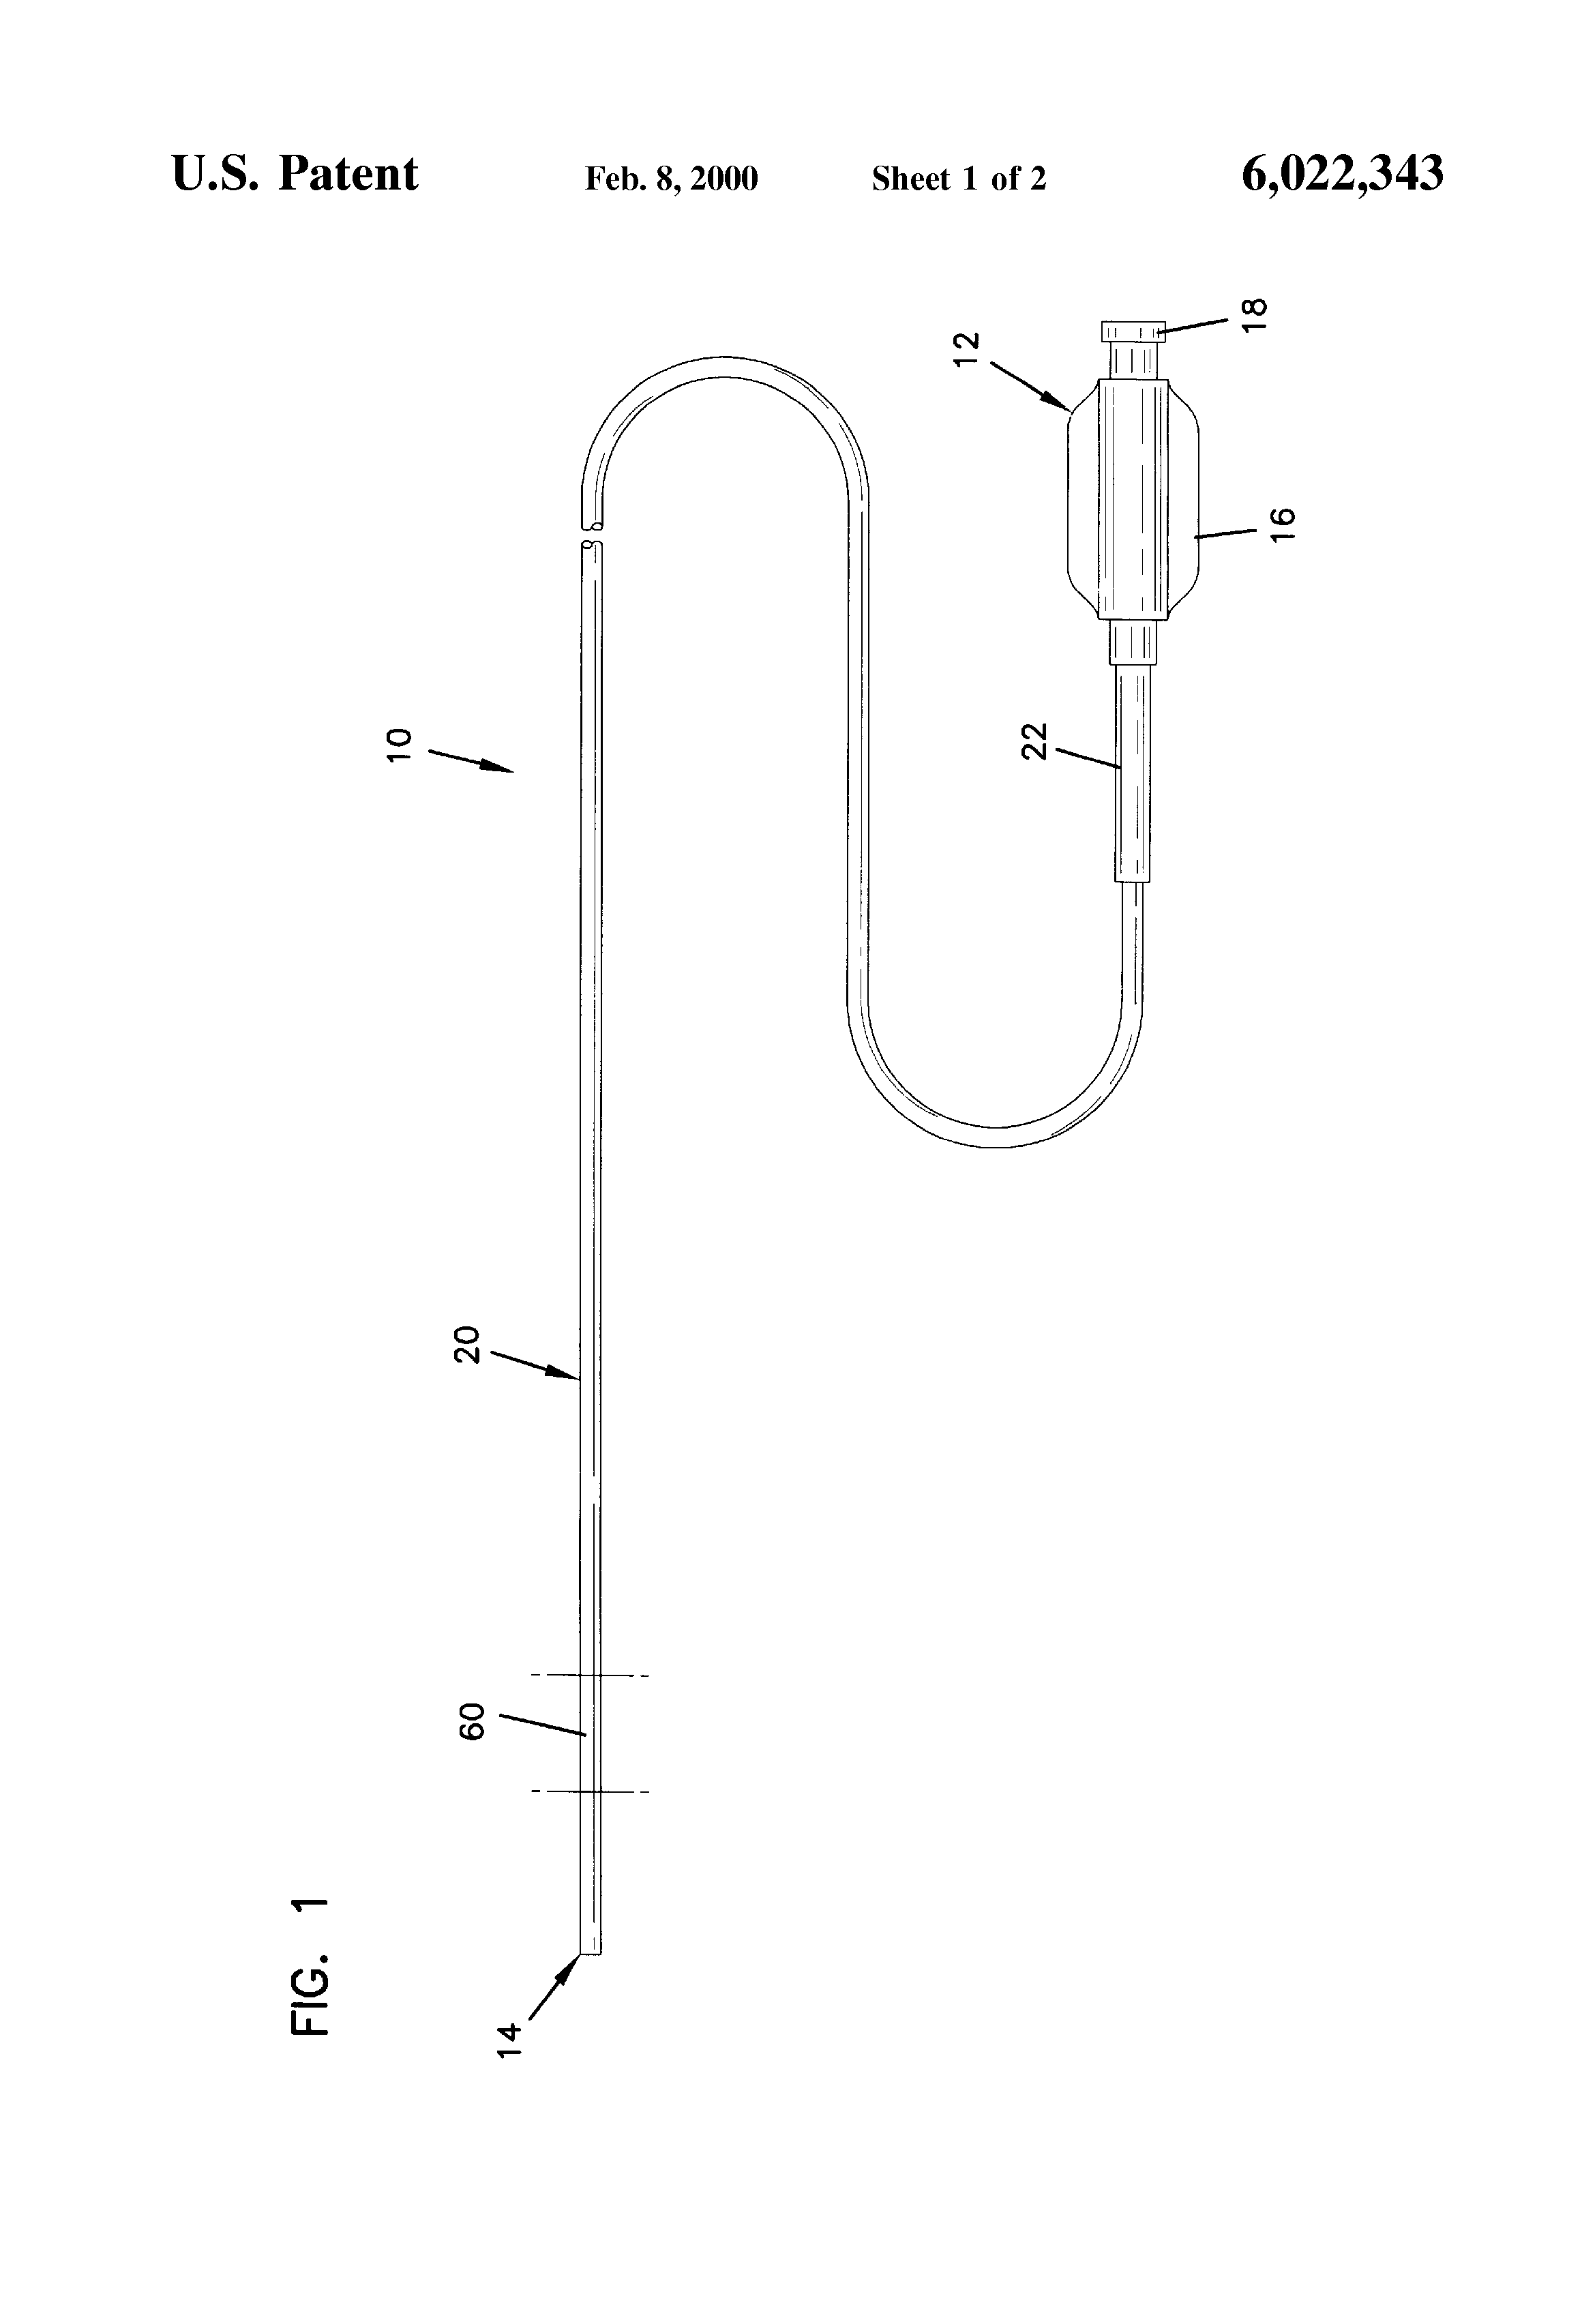 patent us6022343 - bridged coil catheter support structure